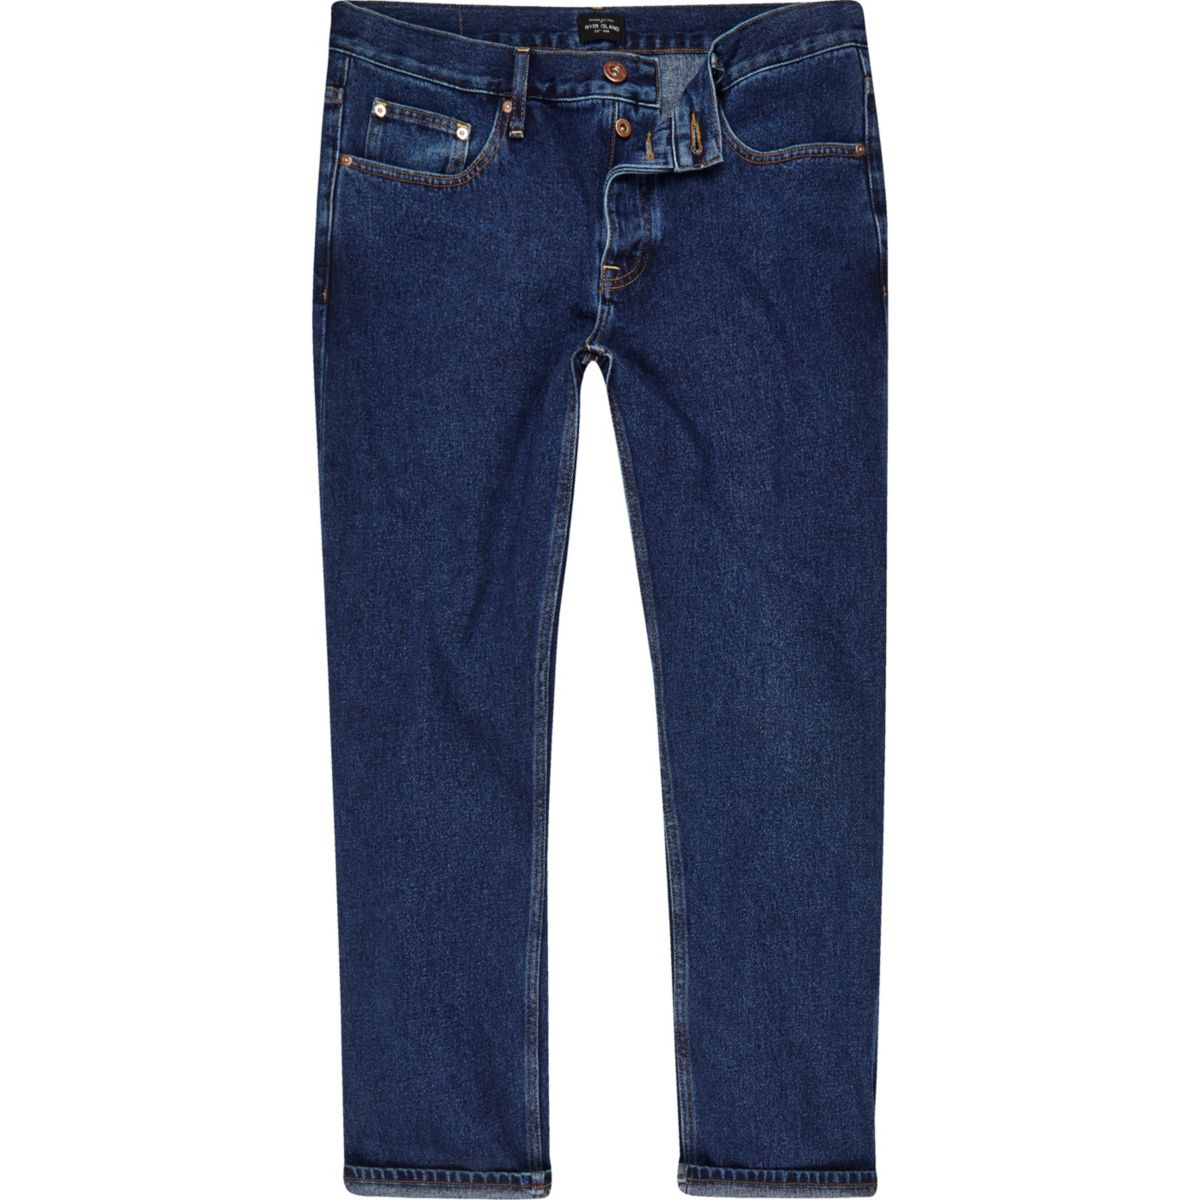 Cody – Dunkelblaue Loose Fit Jeans